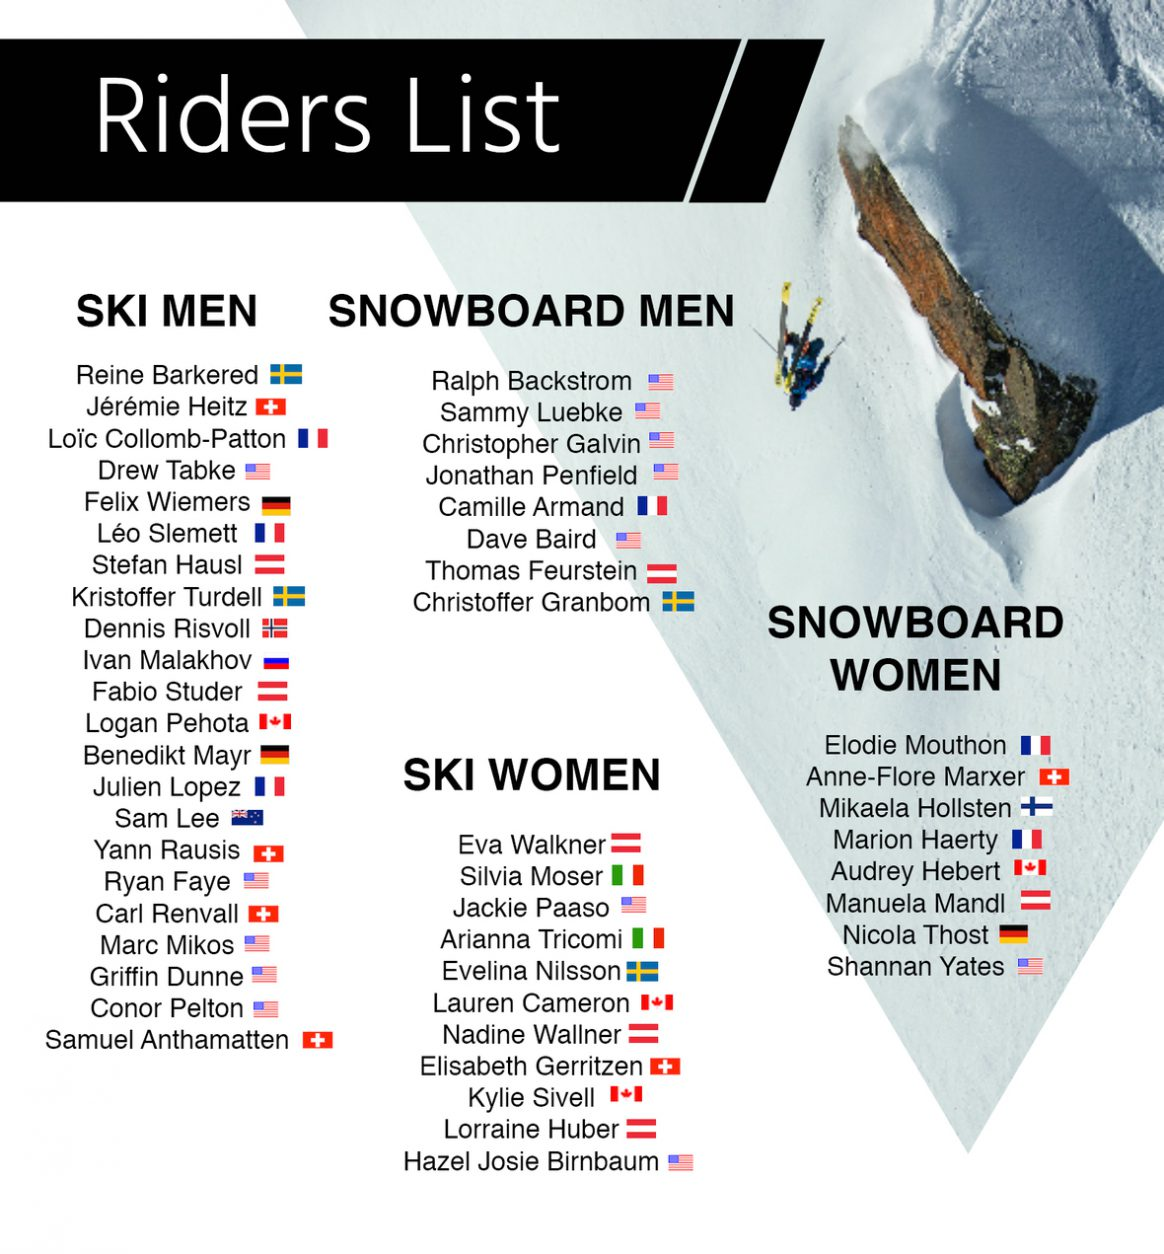 The athlete roster for the 2017 Freeride World Tour.